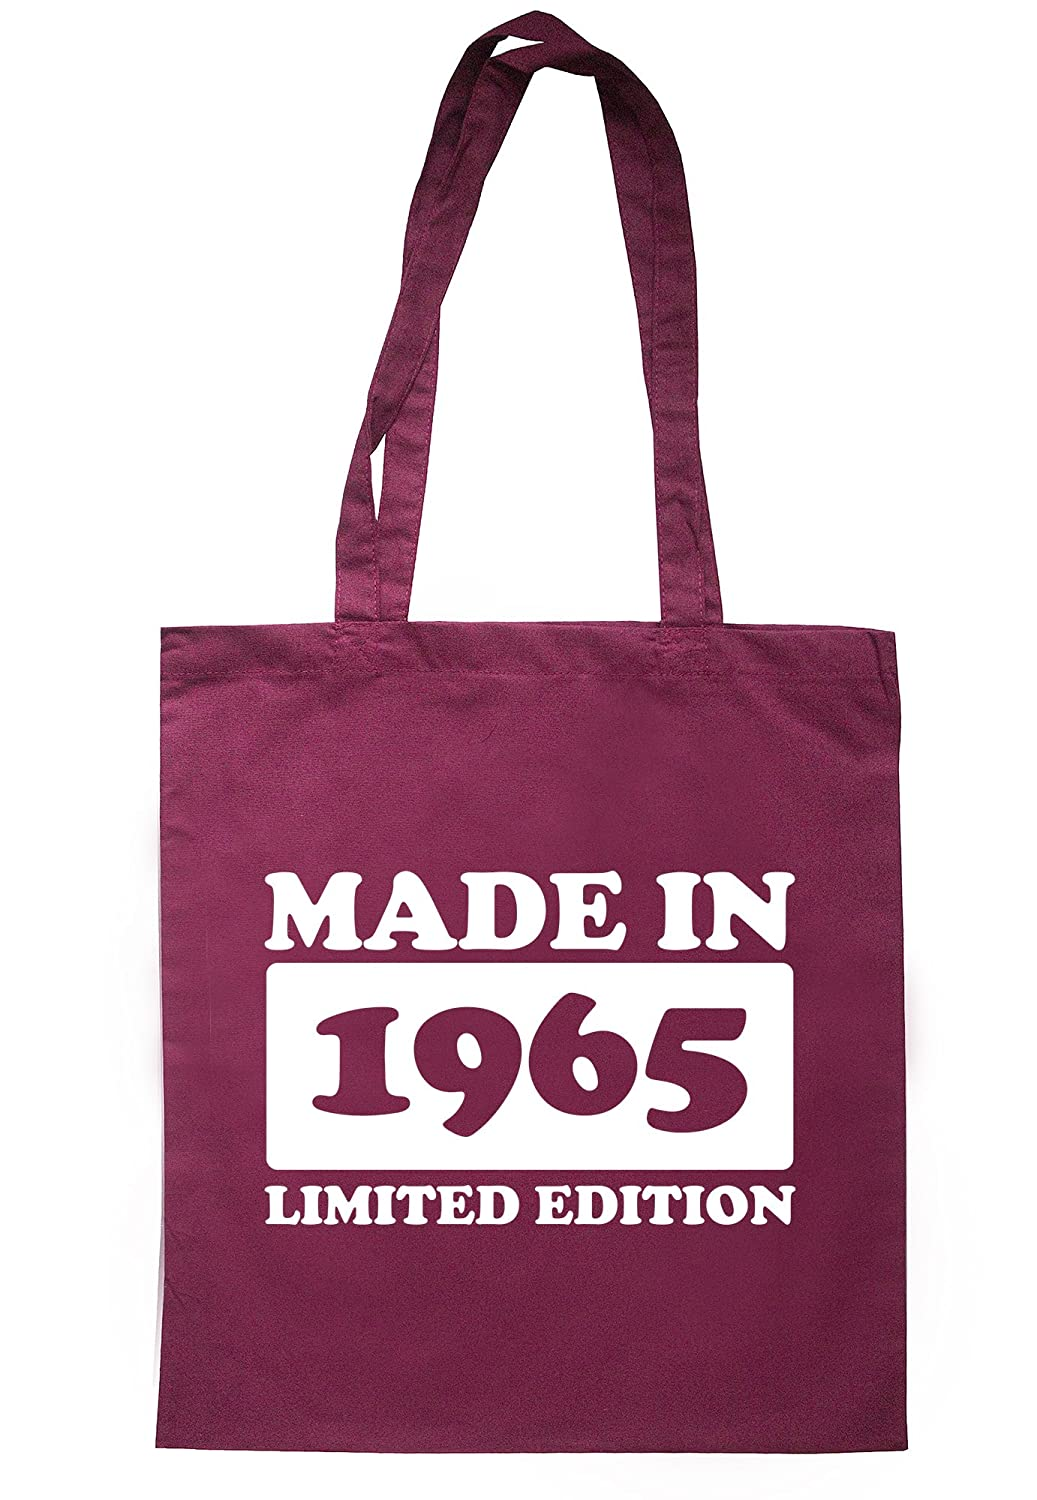 illustratedidentity Made In 1965 Limited Edition Tote Bag 37.5cm x 42cm with long handles TB1728-TB-NV